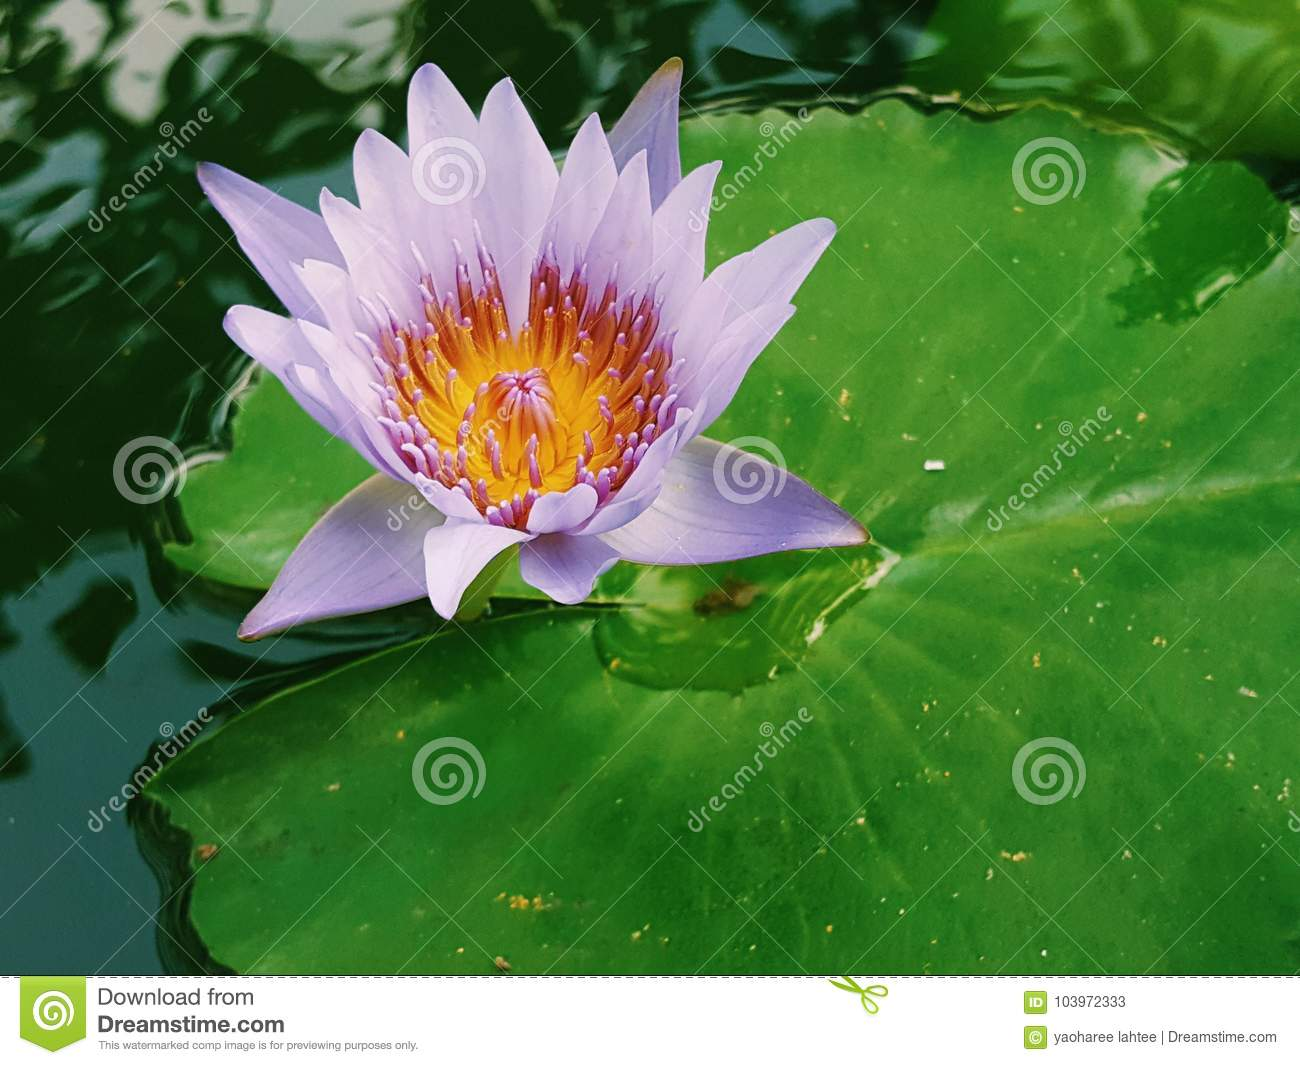 Pink lotus flower blooming on lotus leaf thailand in park stock download pink lotus flower blooming on lotus leaf thailand in park stock image image izmirmasajfo